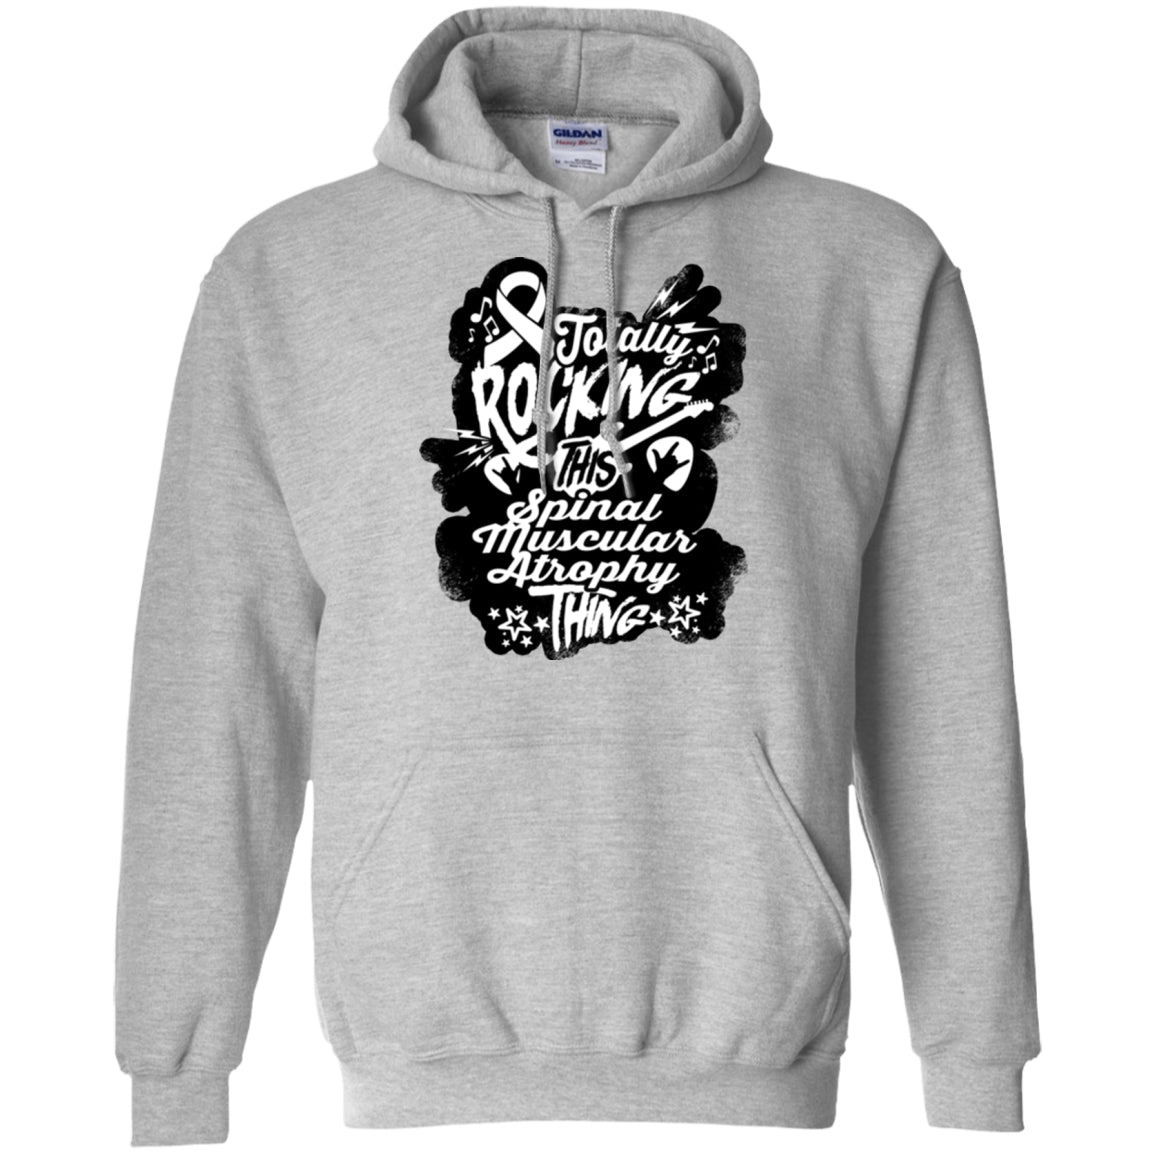 Sweatshirts - Rocking Spinal Muscular Atrophy Pullover Hoodie 8 Oz.